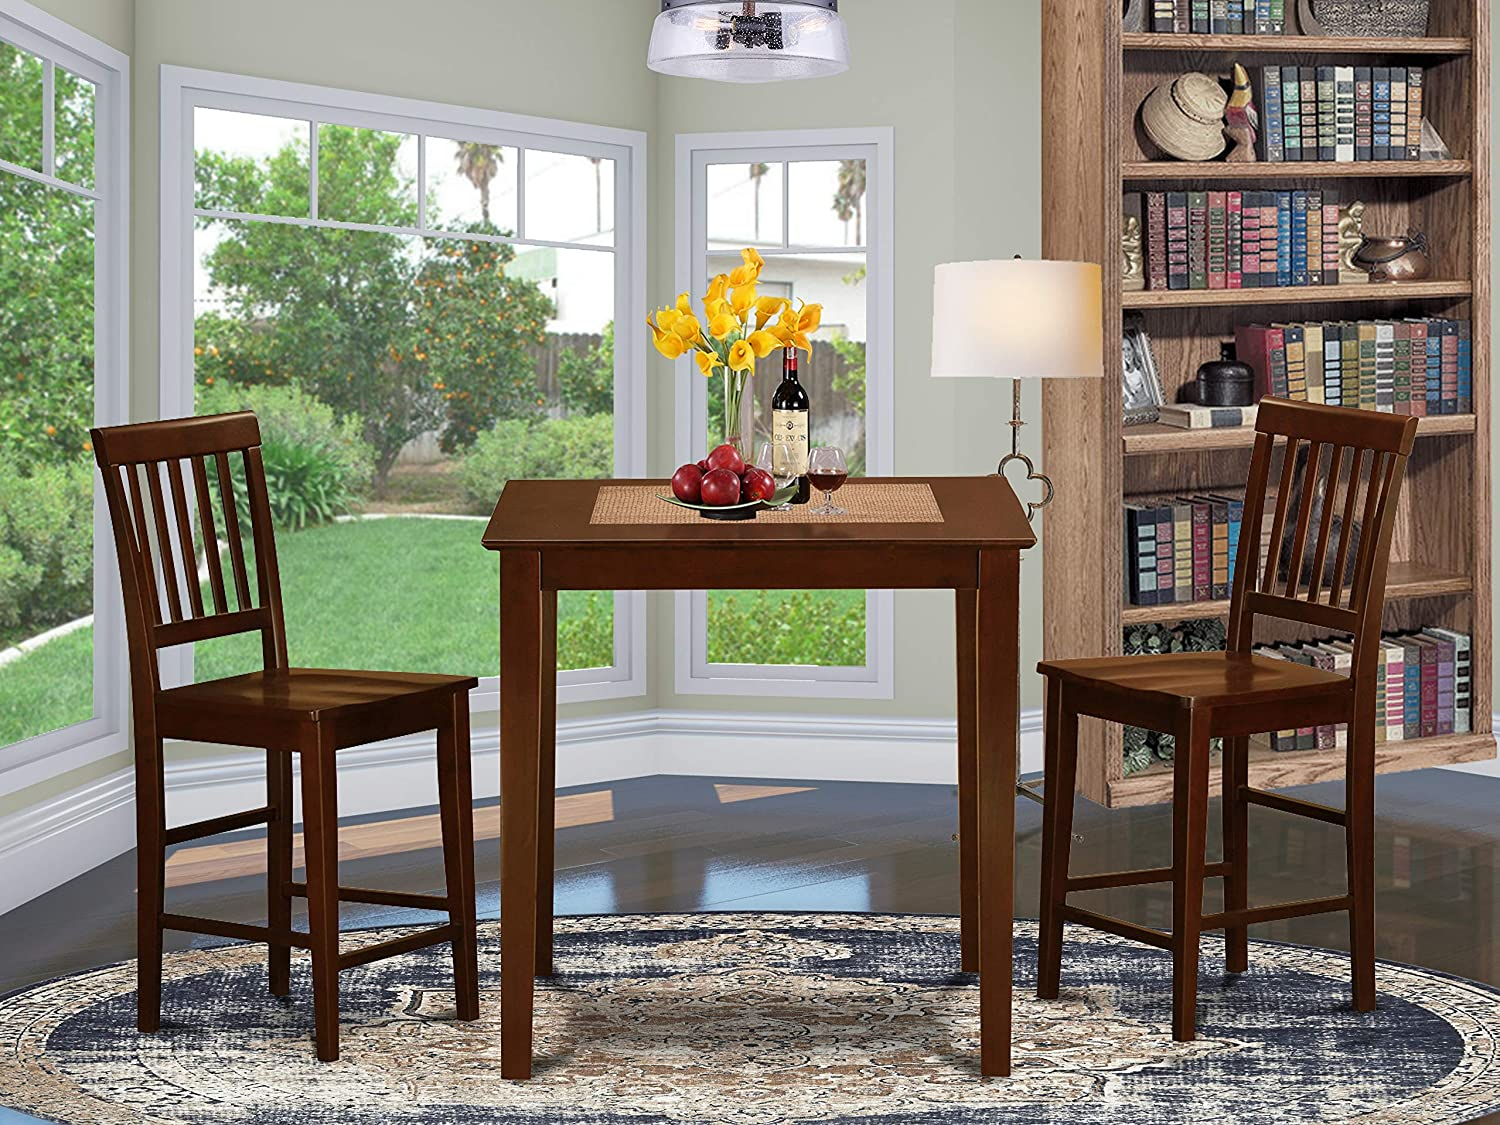 3 Pc pub Table set-counter Kitchen Chairs. height Max 56% OFF 2 and Discount is also underway